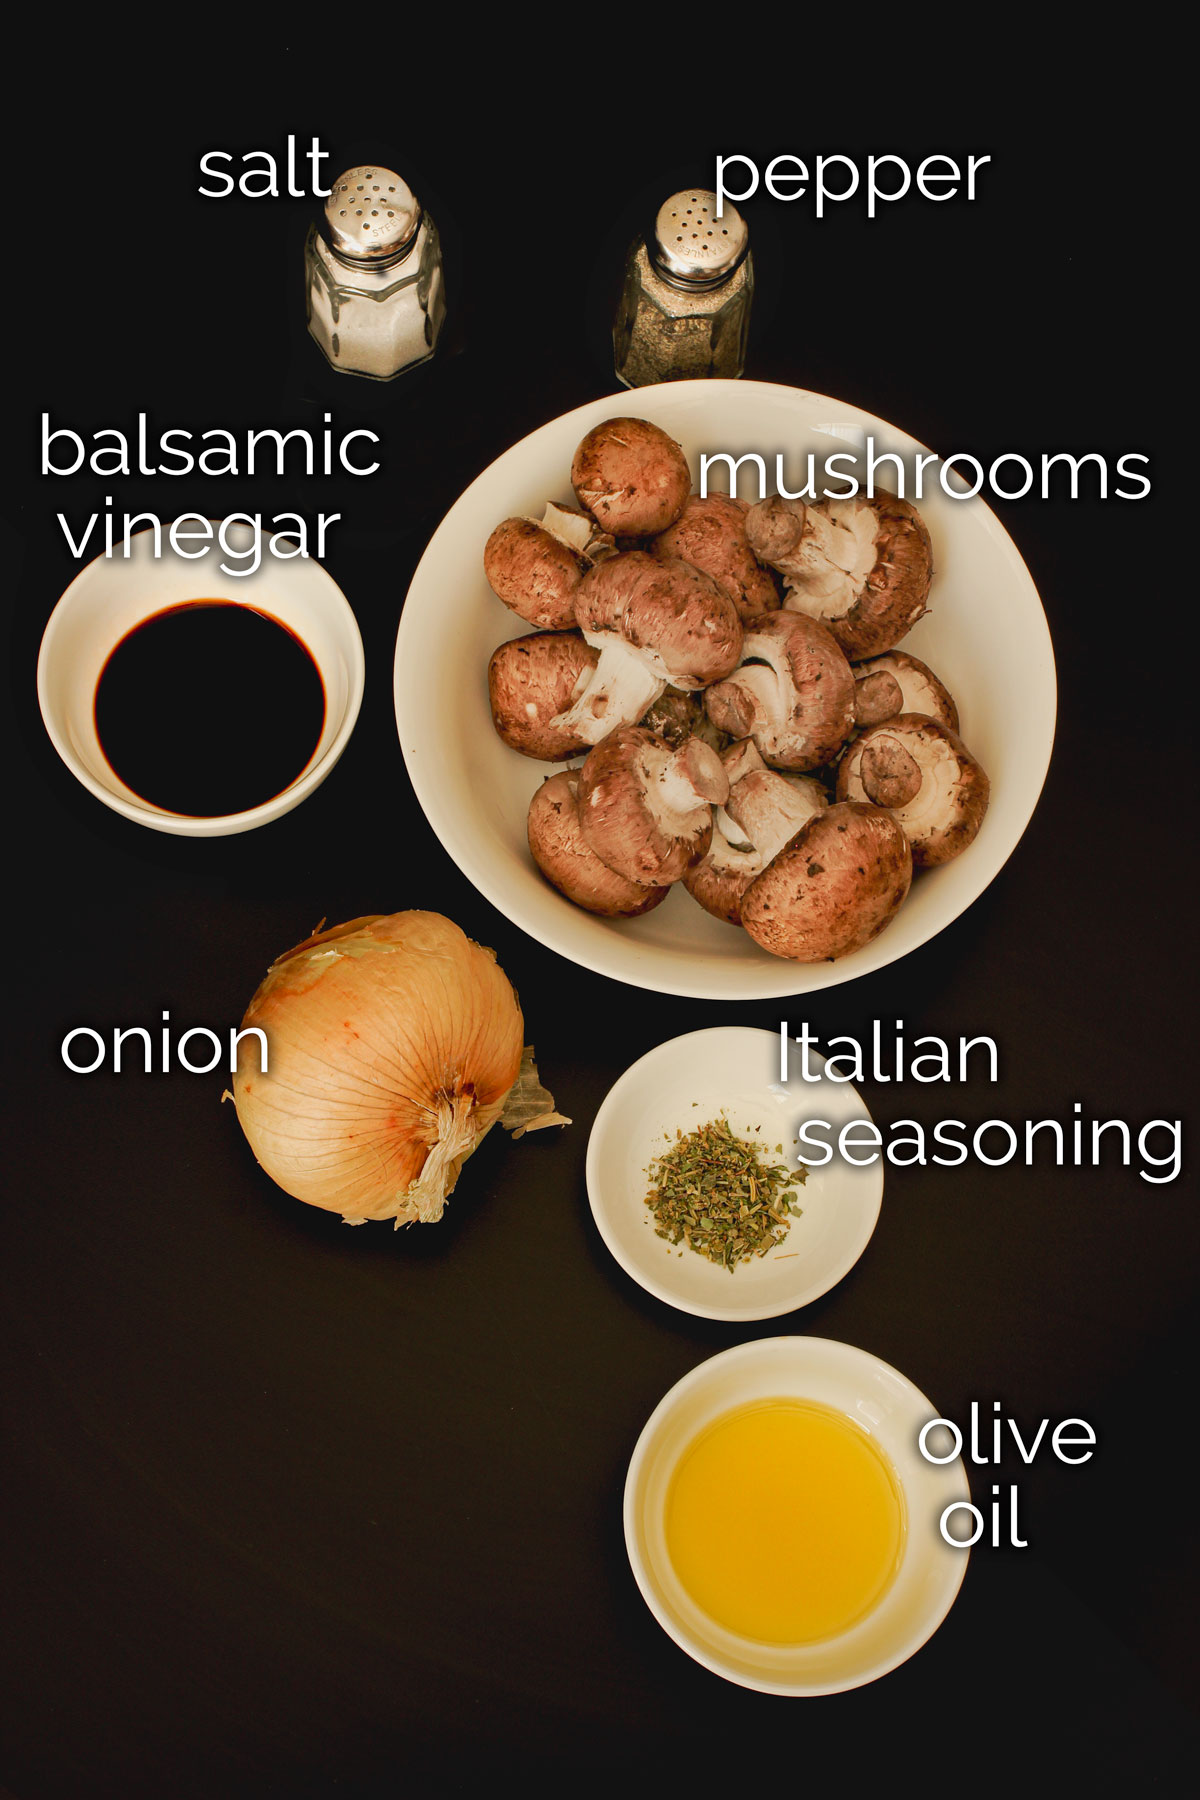 ingredients for sautéed mushrooms and onions laid out on a black table top.